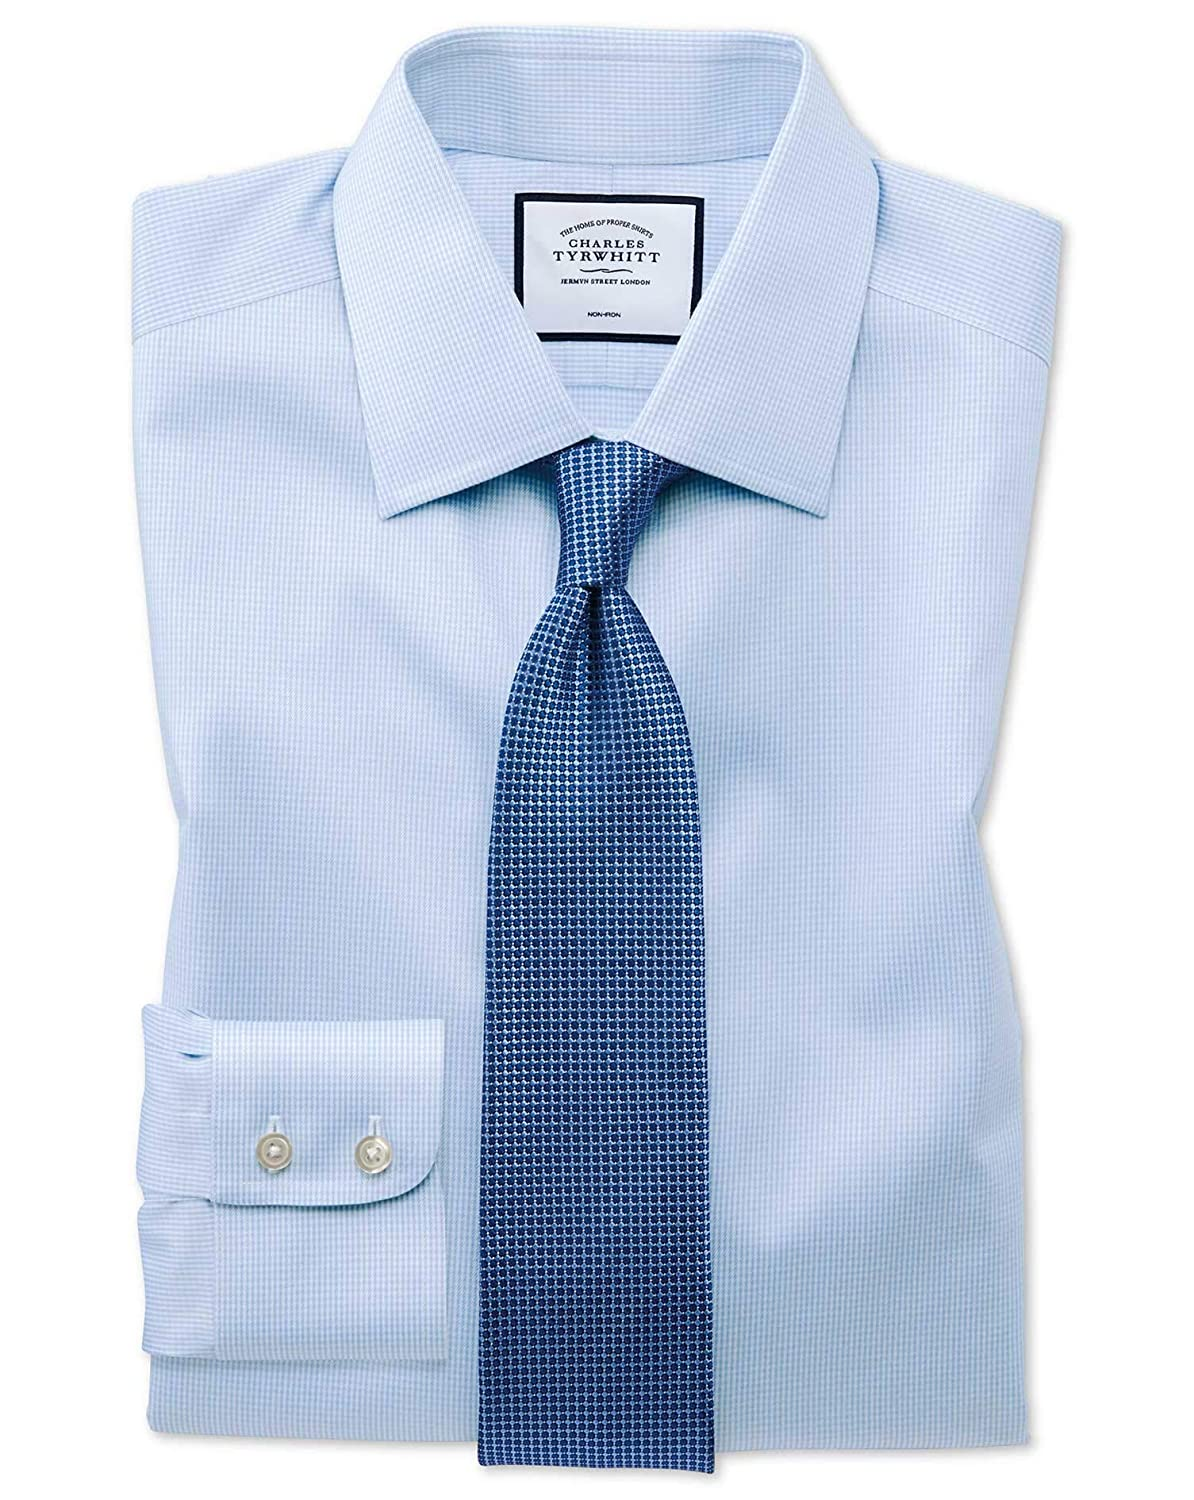 a46491d2 Charles Tyrwhitt Classic Fit Non-Iron Sky Blue Puppytooth Cotton Formal  Shirt Double Cuff: Amazon.co.uk: Clothing